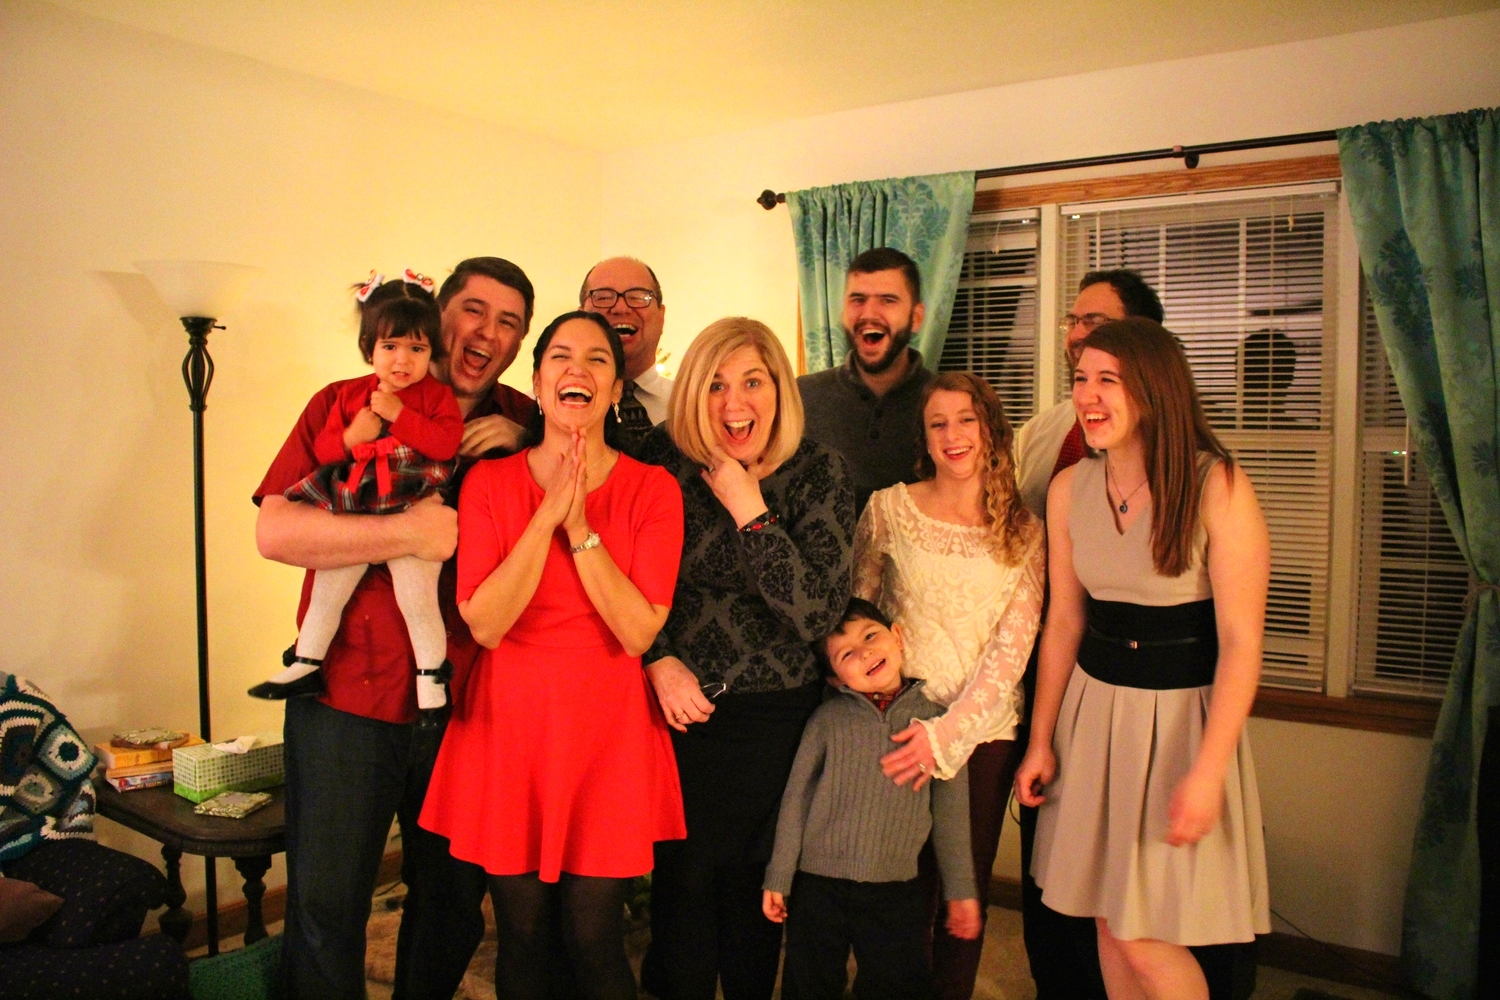 I love this photo of the family=)